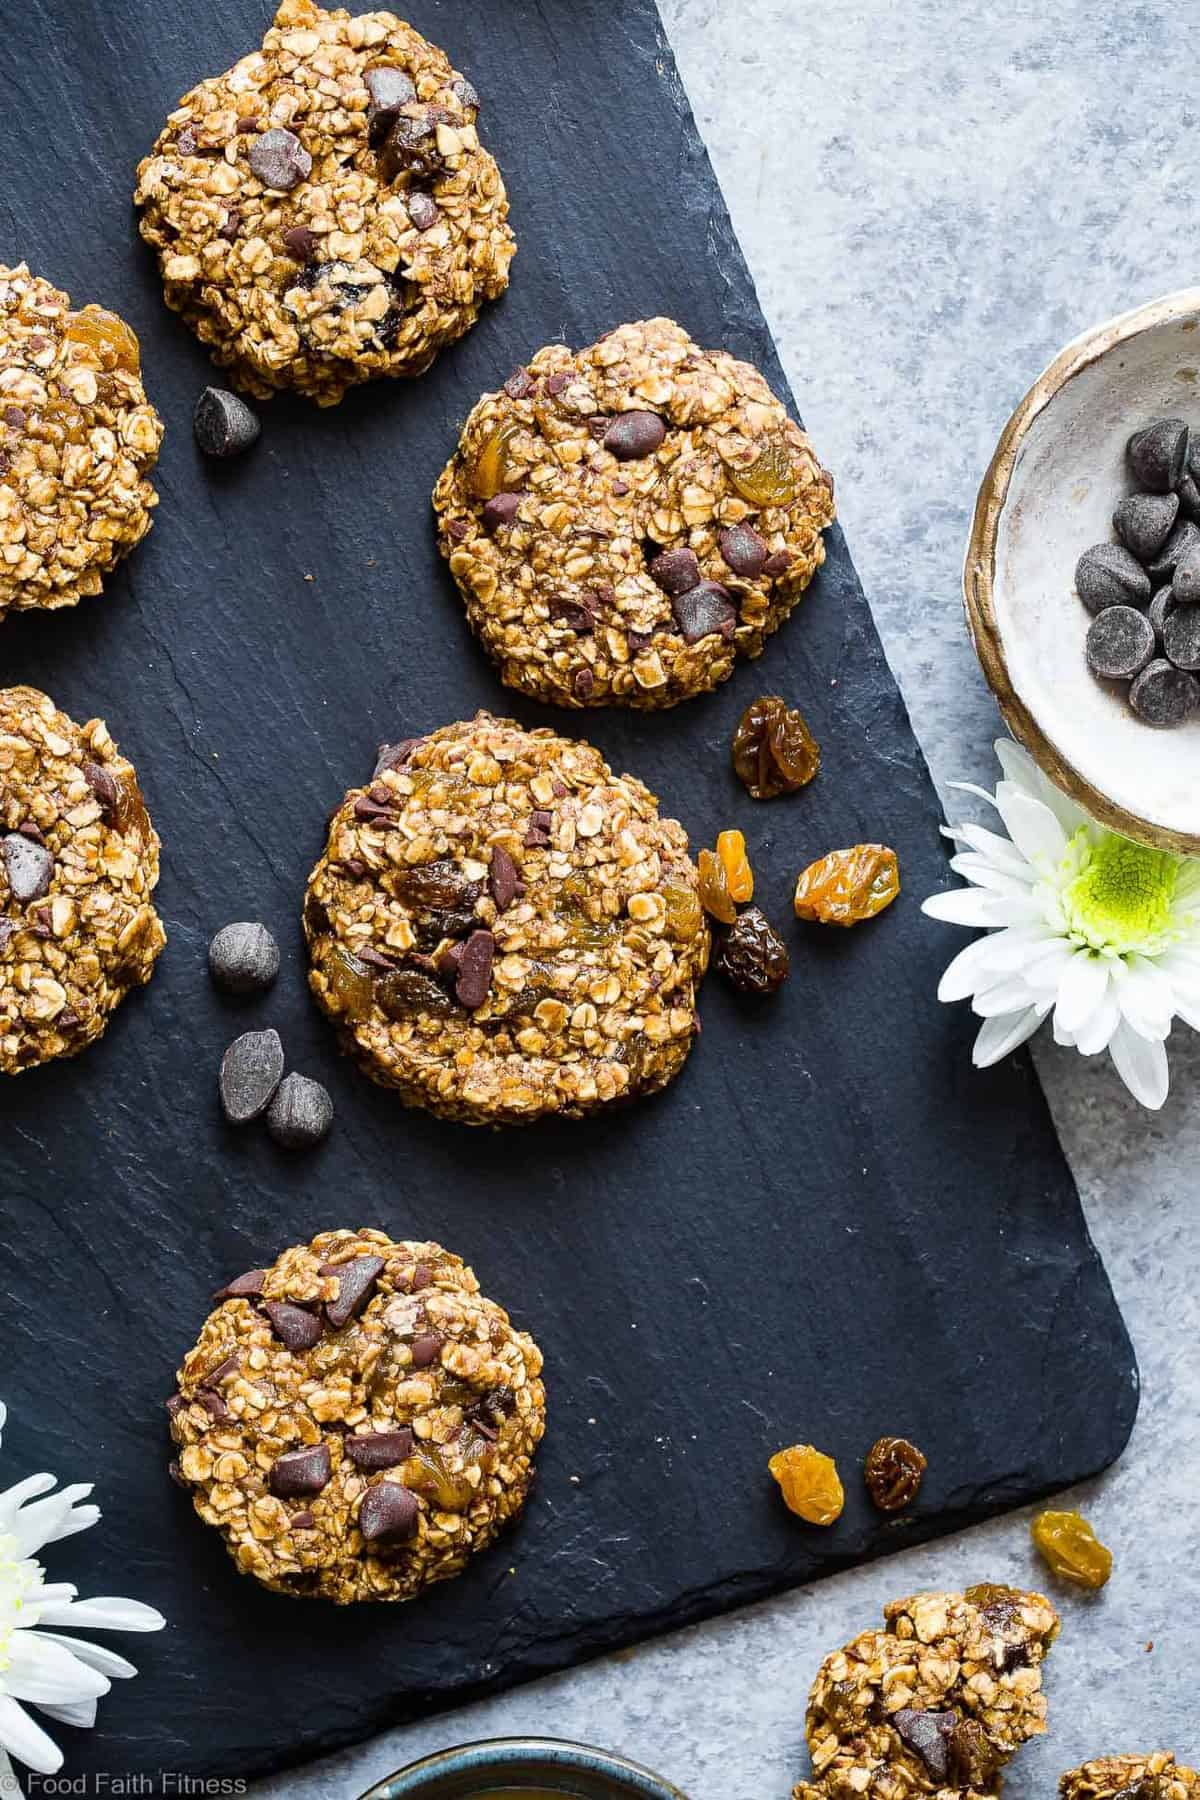 No-Bake Vegan Oatmeal Raisin, Chocolate Chip, and Tahini Cookies -These EASY, no bake oatmeal cookieshave a surprise tahini twist, chocolate and notes of spicy cardamon and chewy golden raisins! A healthy, gluten/dairy/egg free treat for only 110 calories!   #Foodfaithfitness   #Vegan #NoBake #Healthy #ChocolateChip #Glutenfree